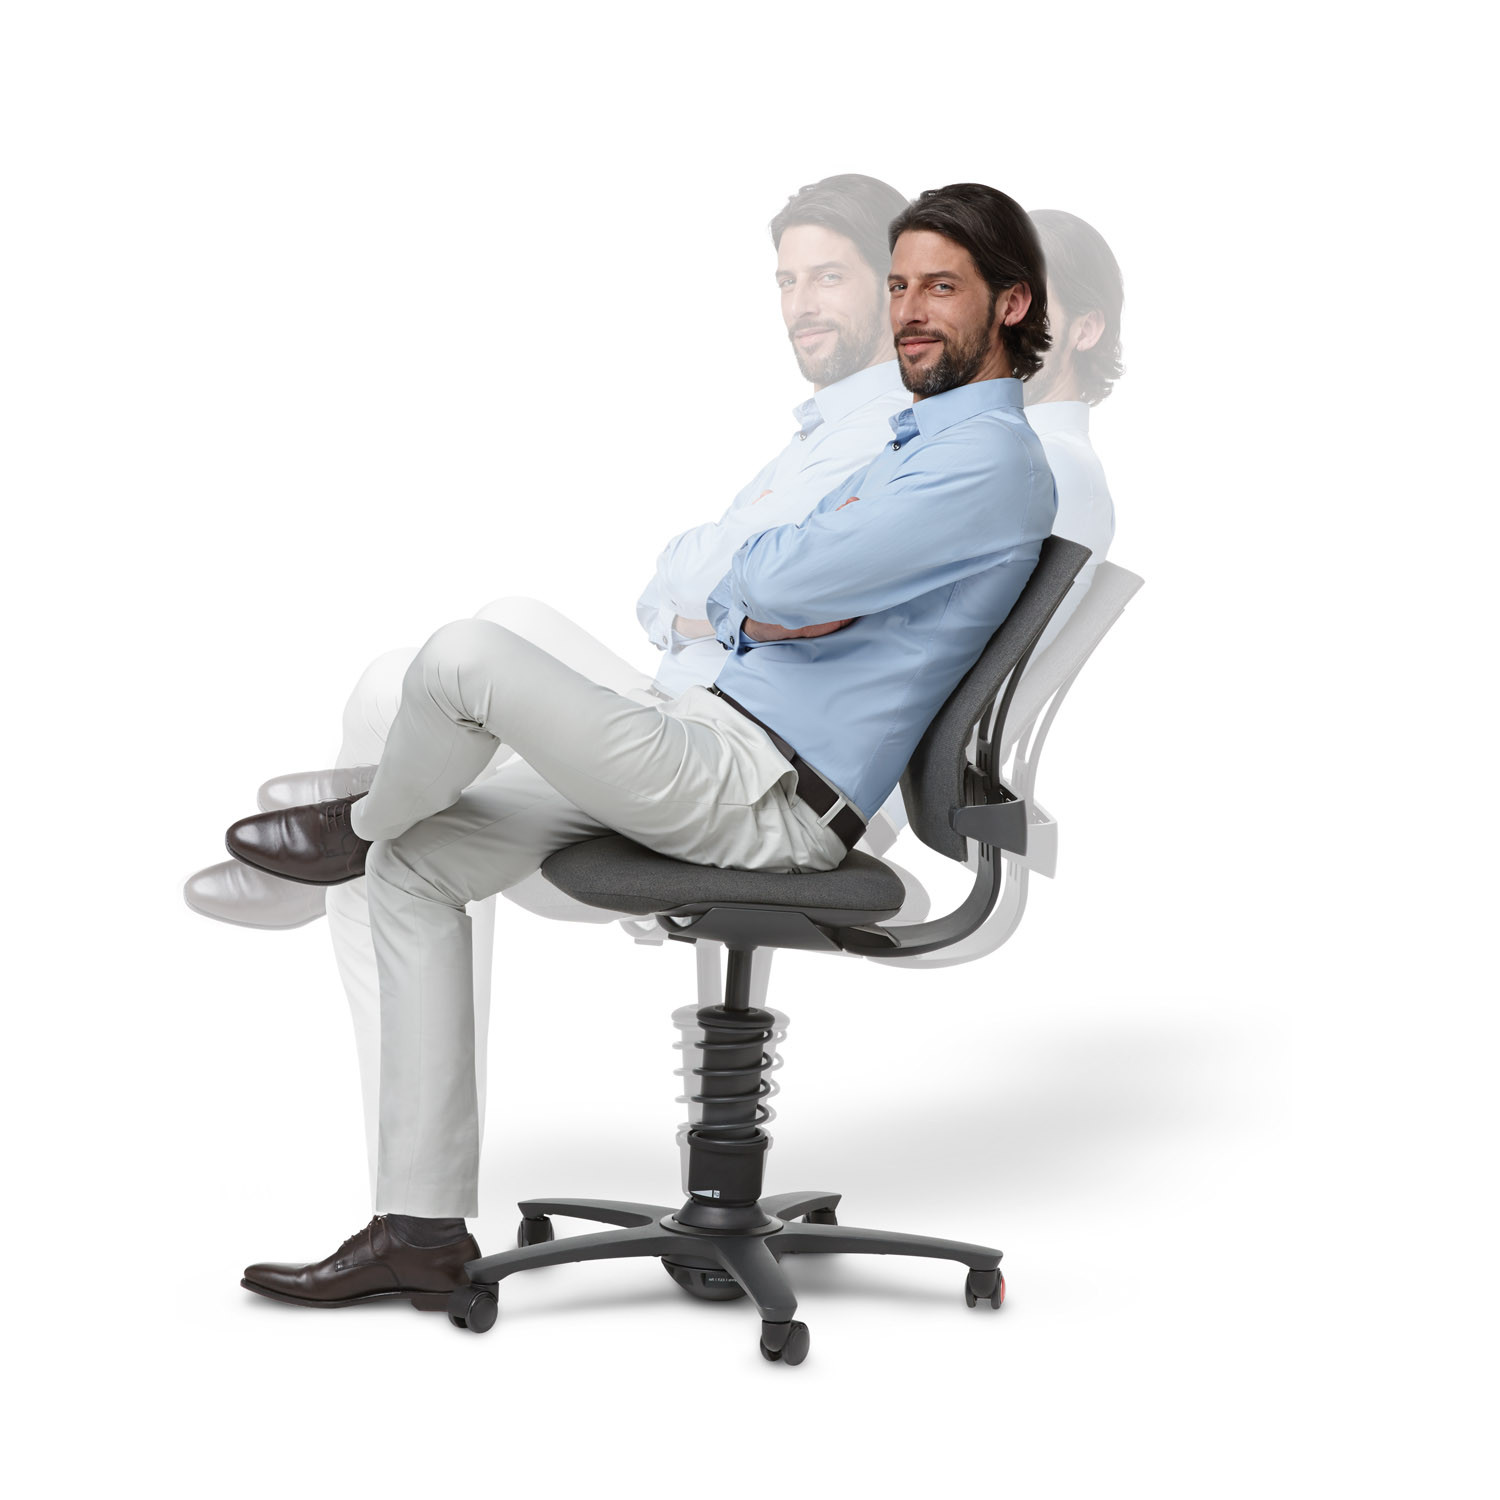 3Dee Office Chair for Agile Working